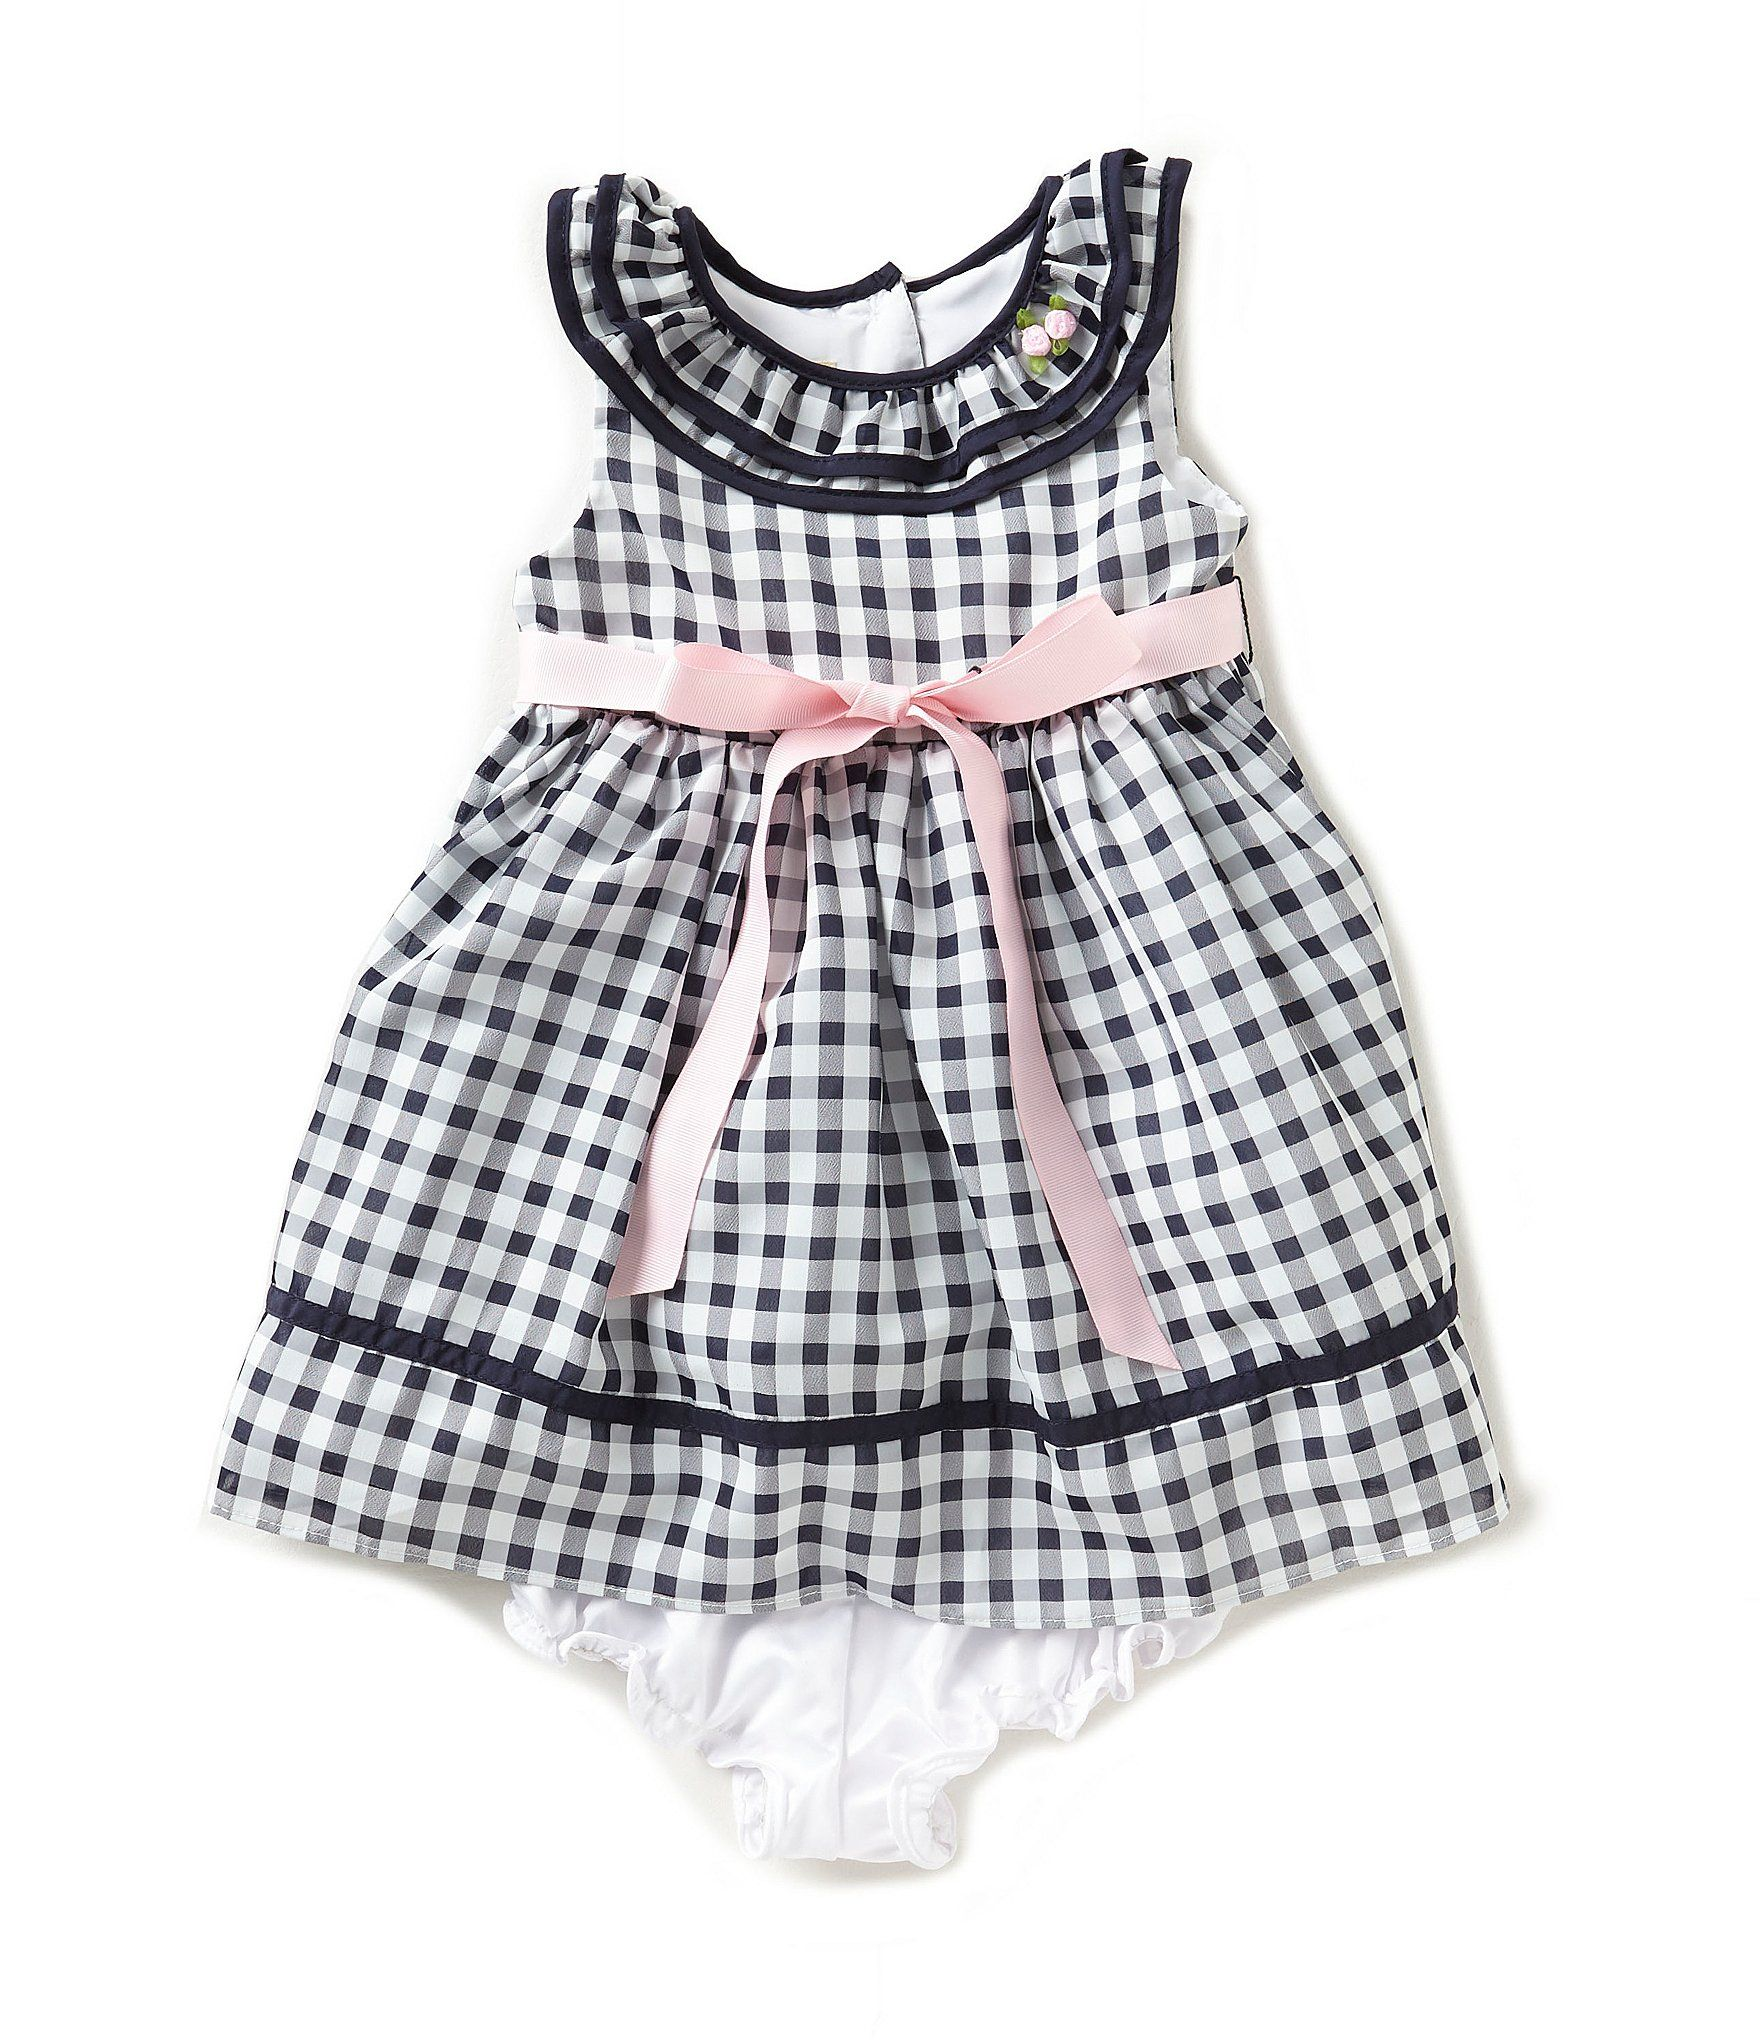 Laura Ashley London Baby Girls Newborn24 Months Checked Bow Dress